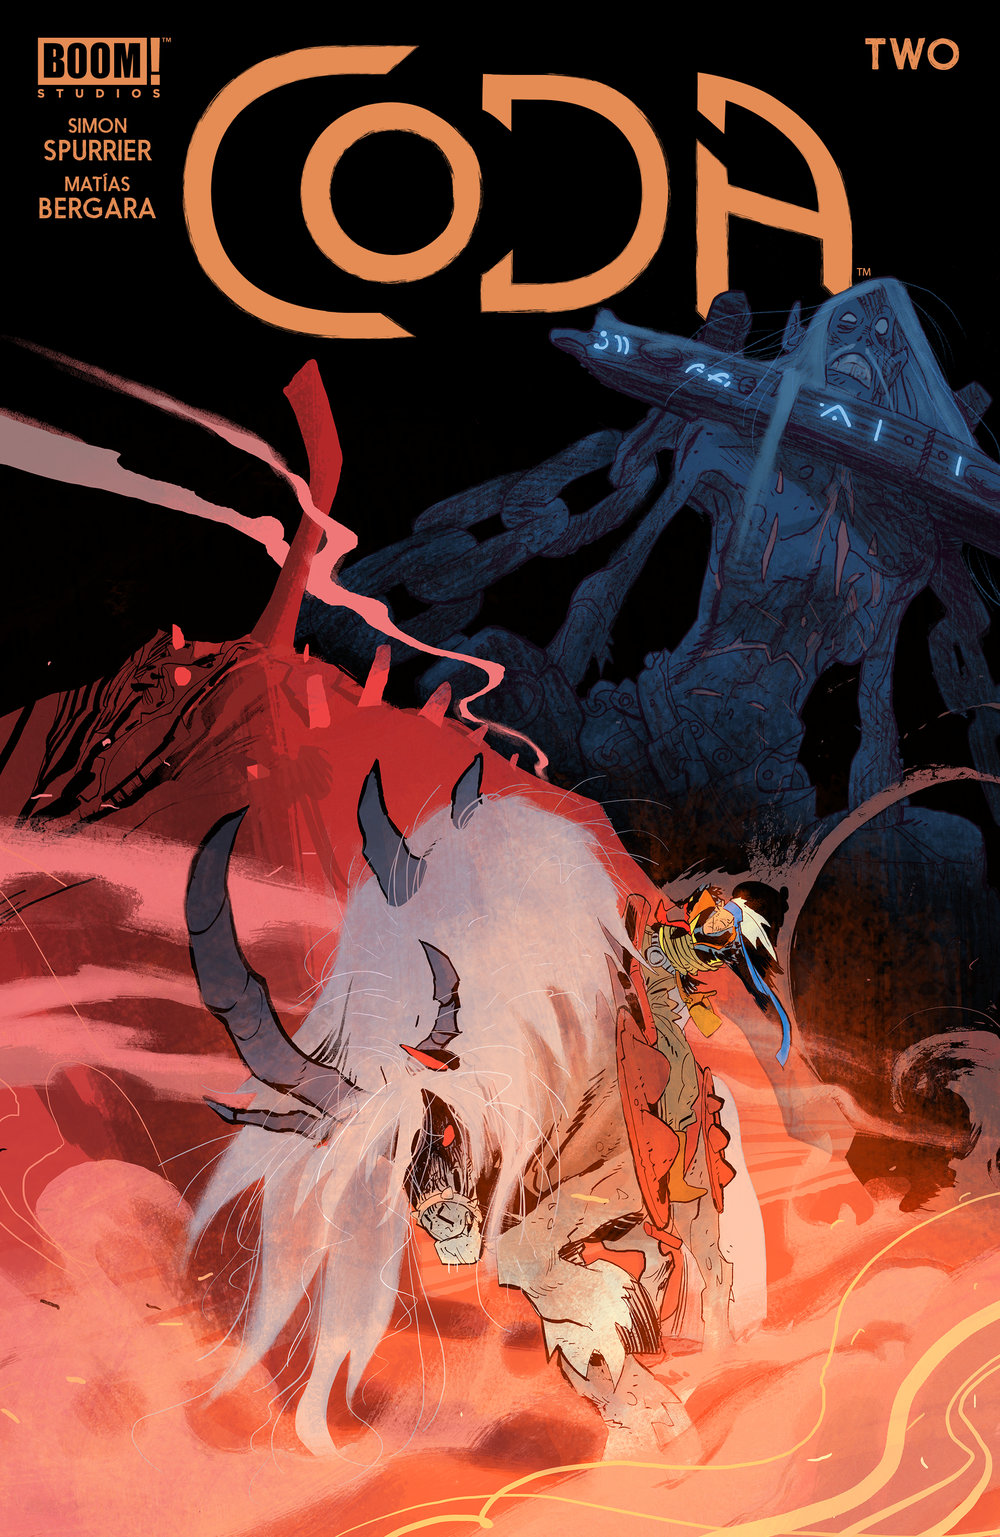 Coda_002_Cover_Main.jpg